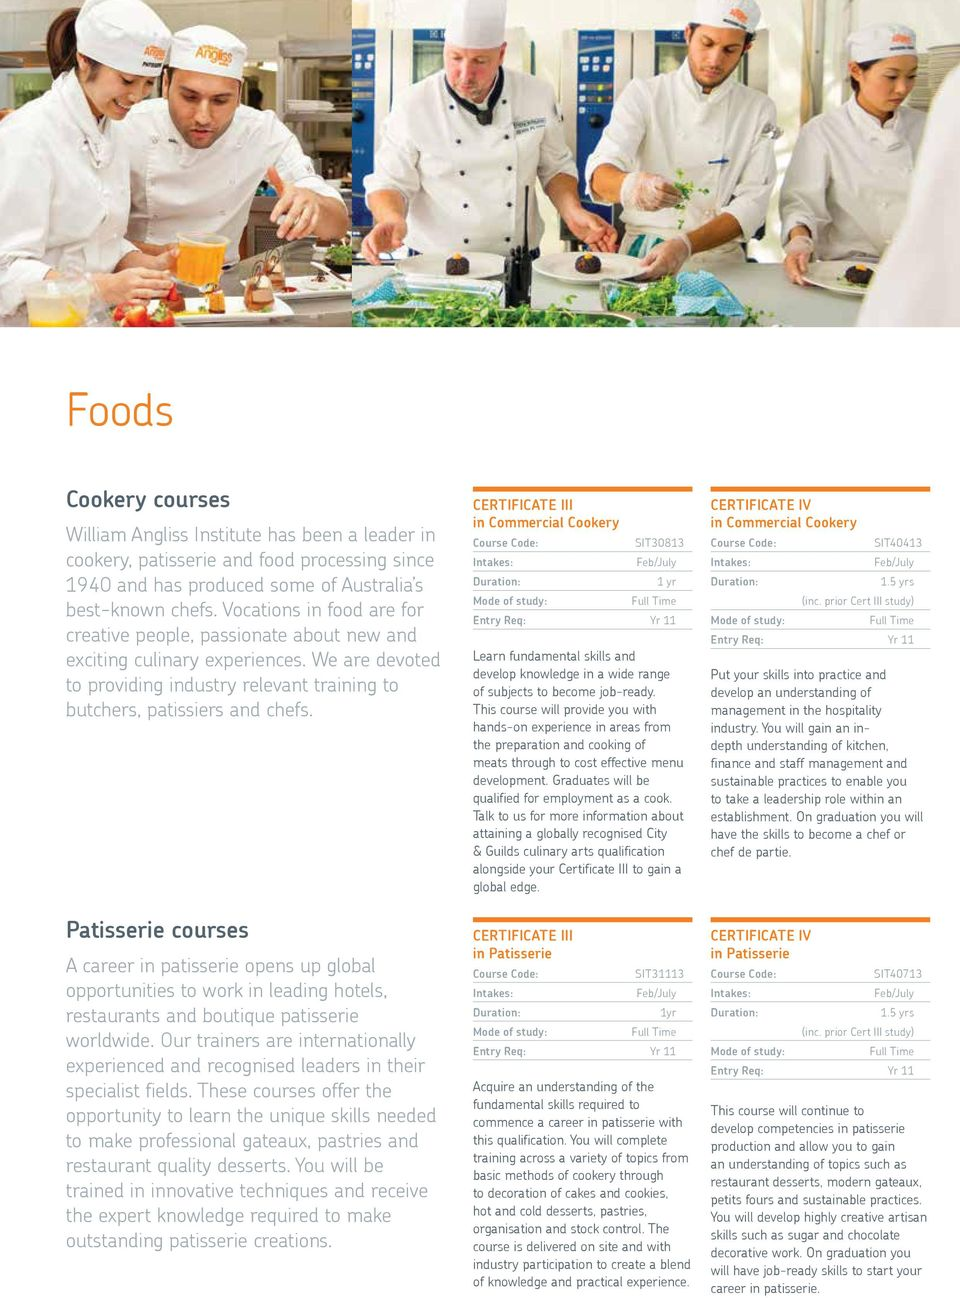 William Angliss Institute has been a leader in cookery, patisserie and food processing since 1940 Direct and applications has produced some of Australia s VET FEE-HELP best-known For applications